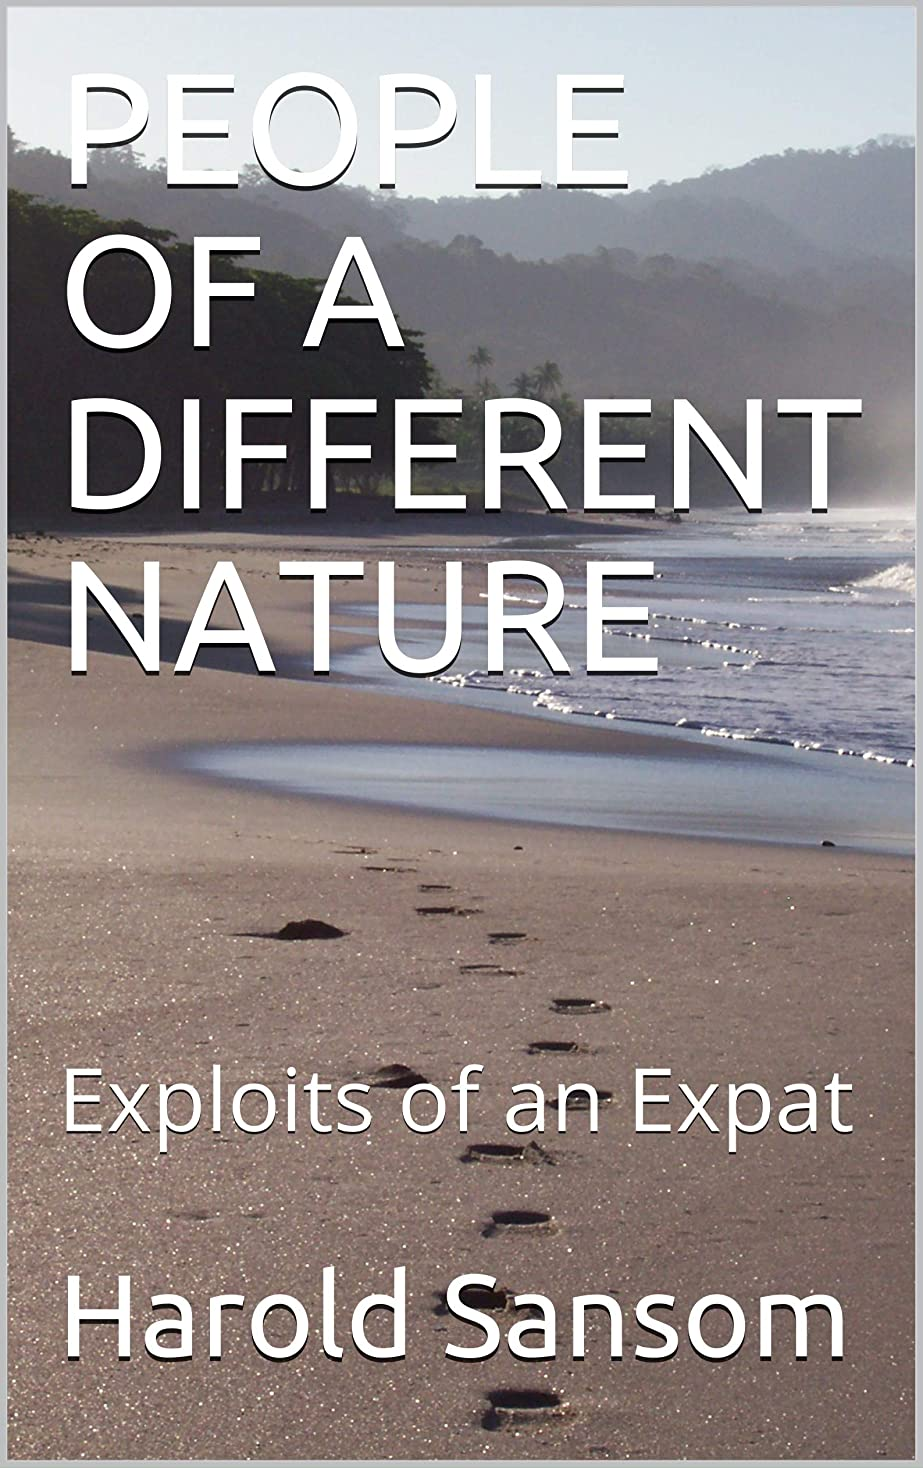 ガイドライン終わらせるノートPEOPLE OF A DIFFERENT NATURE: Exploits of an Expat (English Edition)